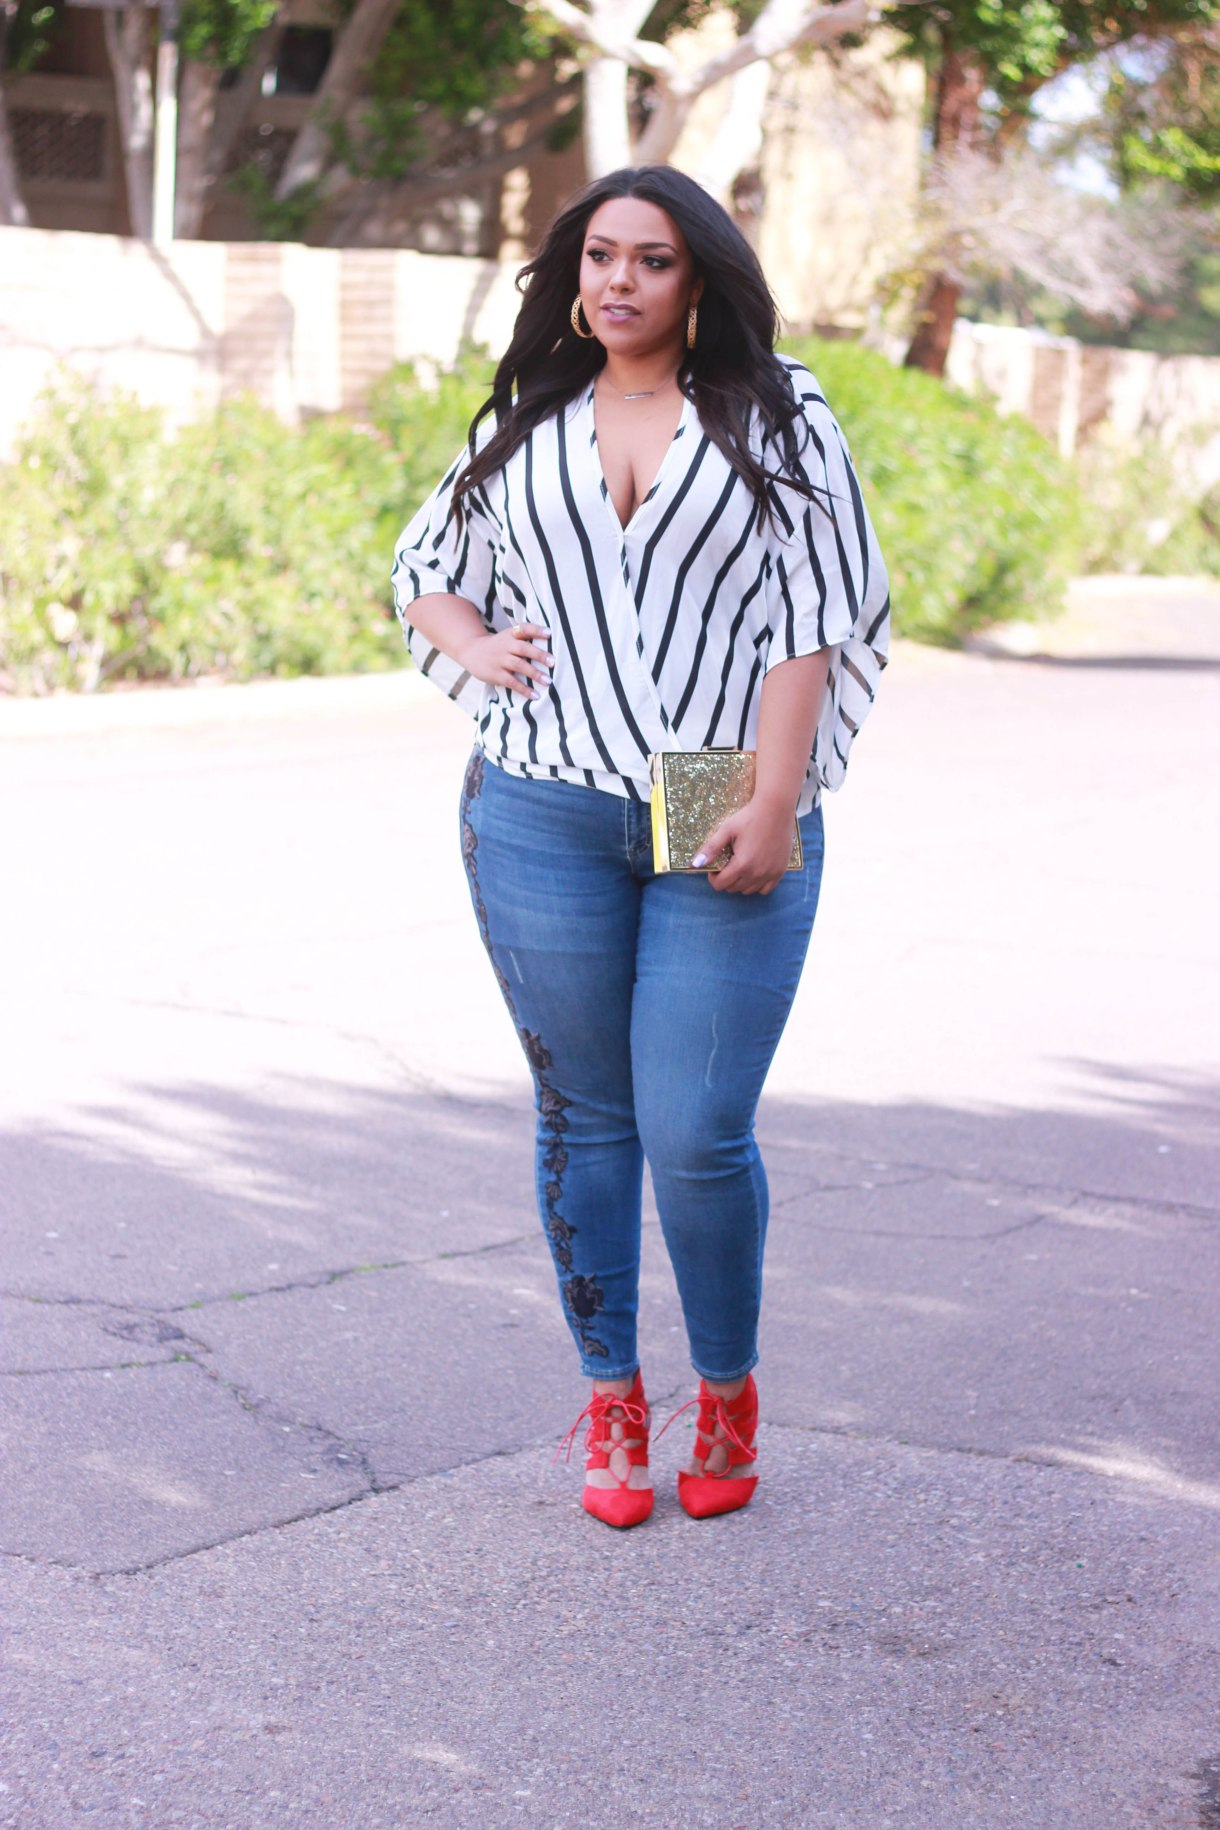 As worn by  Nicole Simone of Curves on a Budget